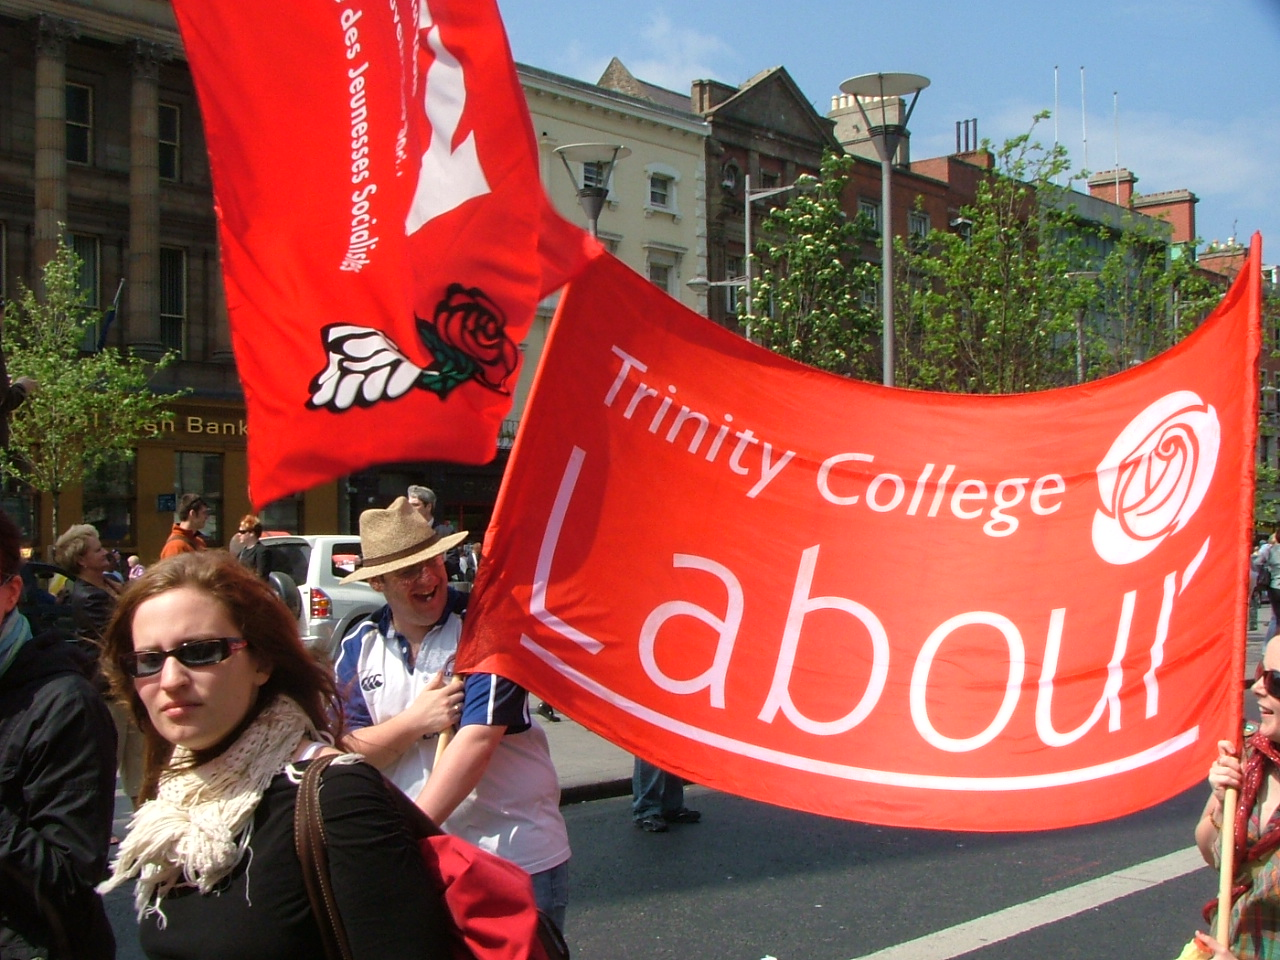 essays in irish labour history review Free irish history papers, essays, and research papers.